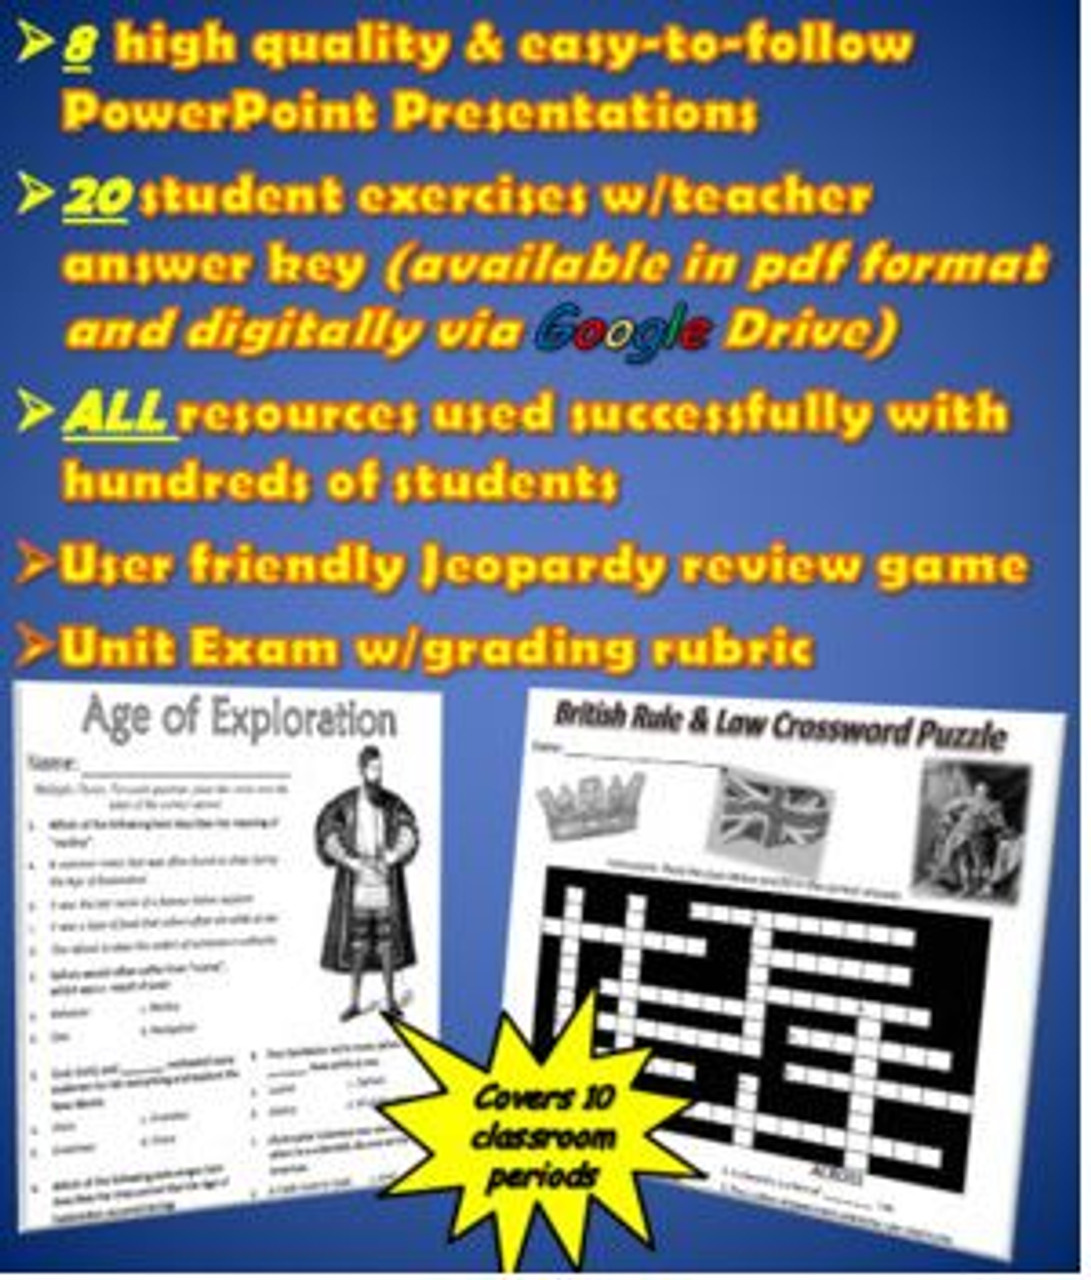 High quality resources completely ready for you to use with your students!